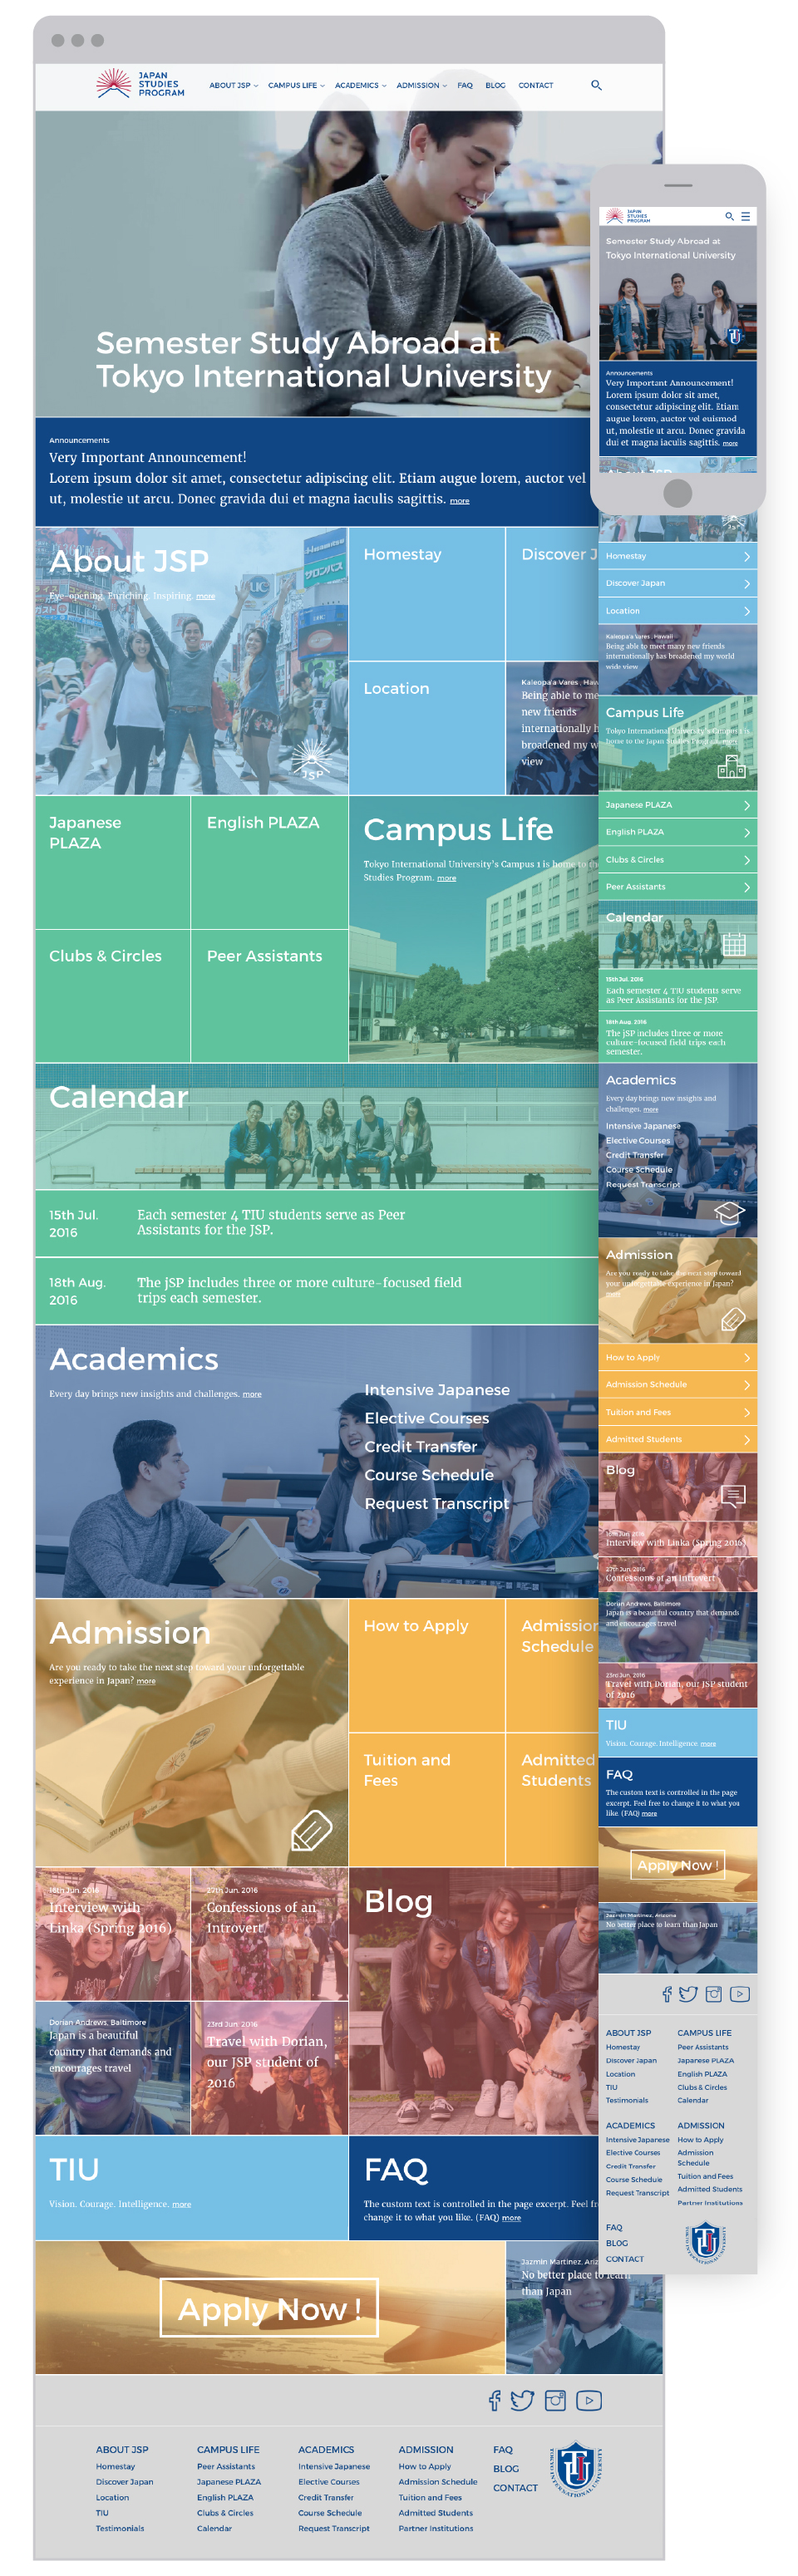 Japan Studies Program for Tokyo International University - Homepage of responsive website - UI UX